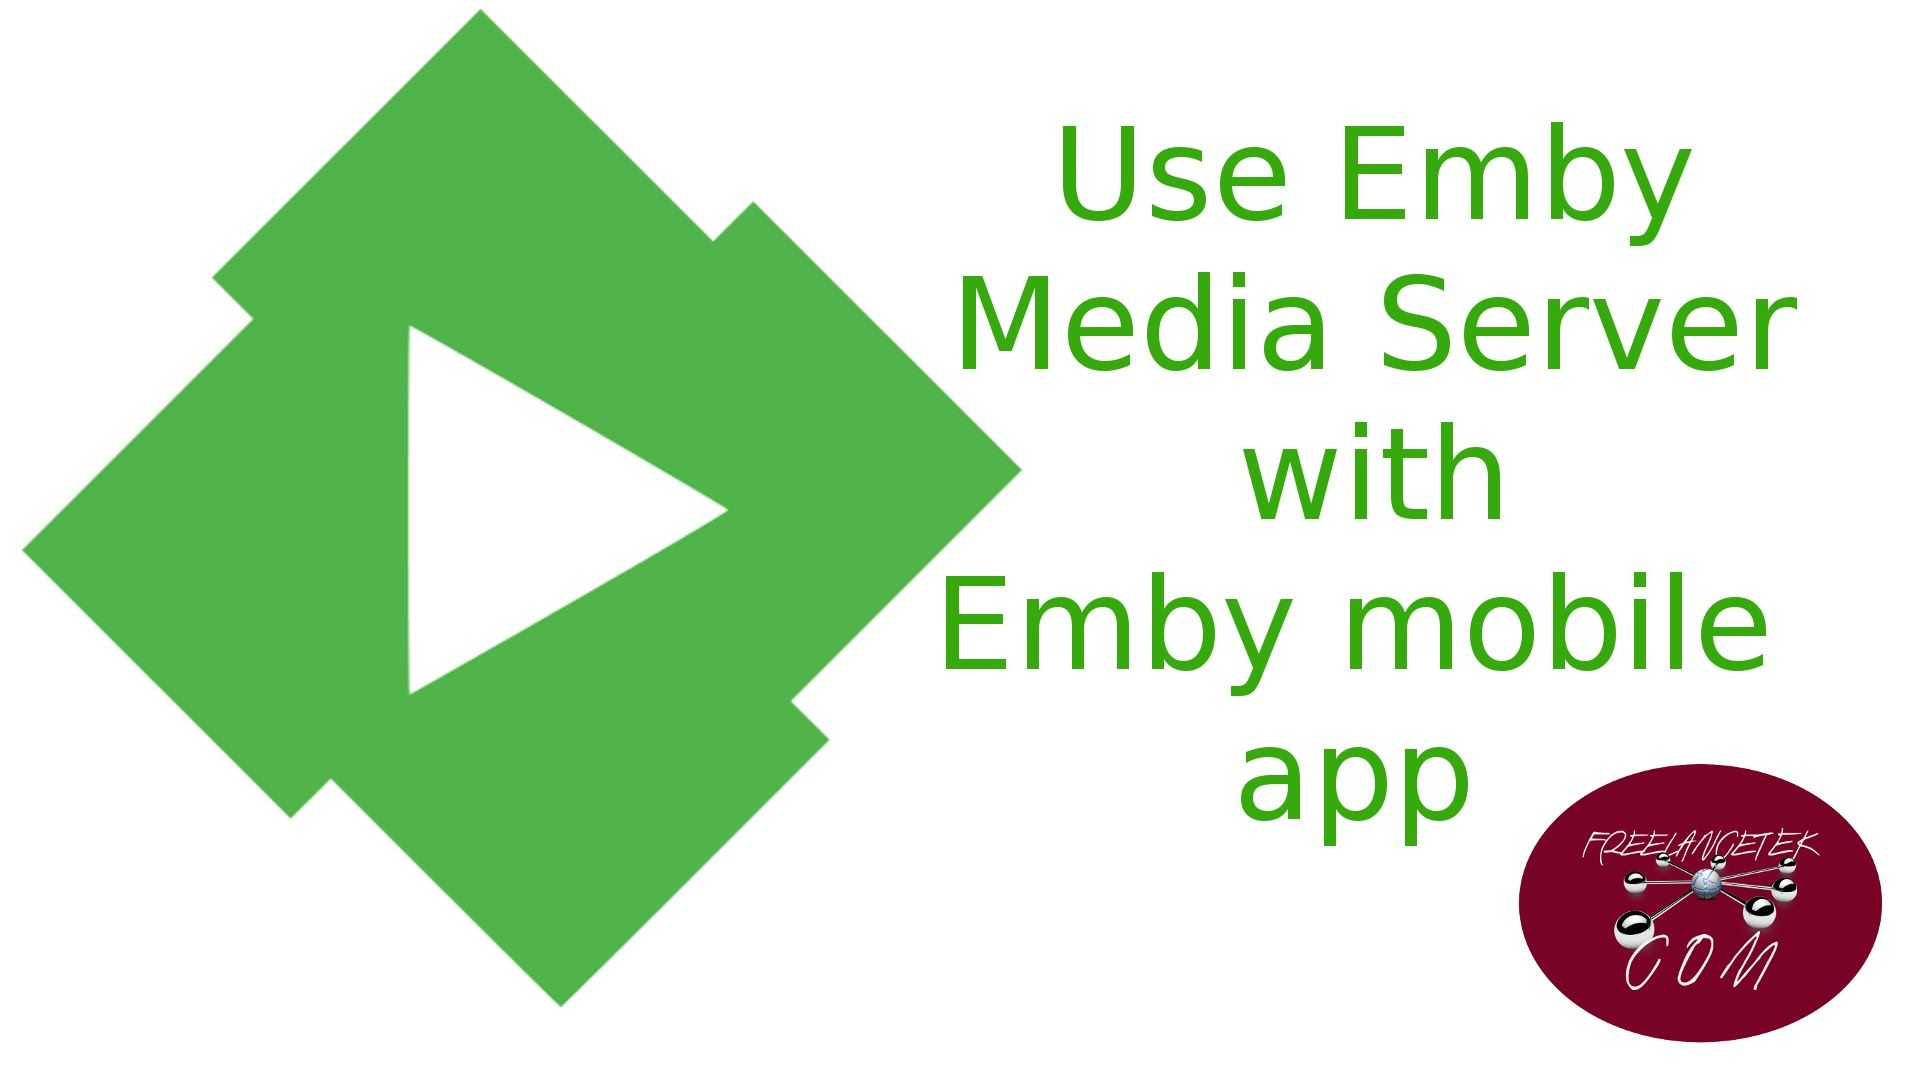 EMBY media server Part 5 - Setup and use Emby mobile app